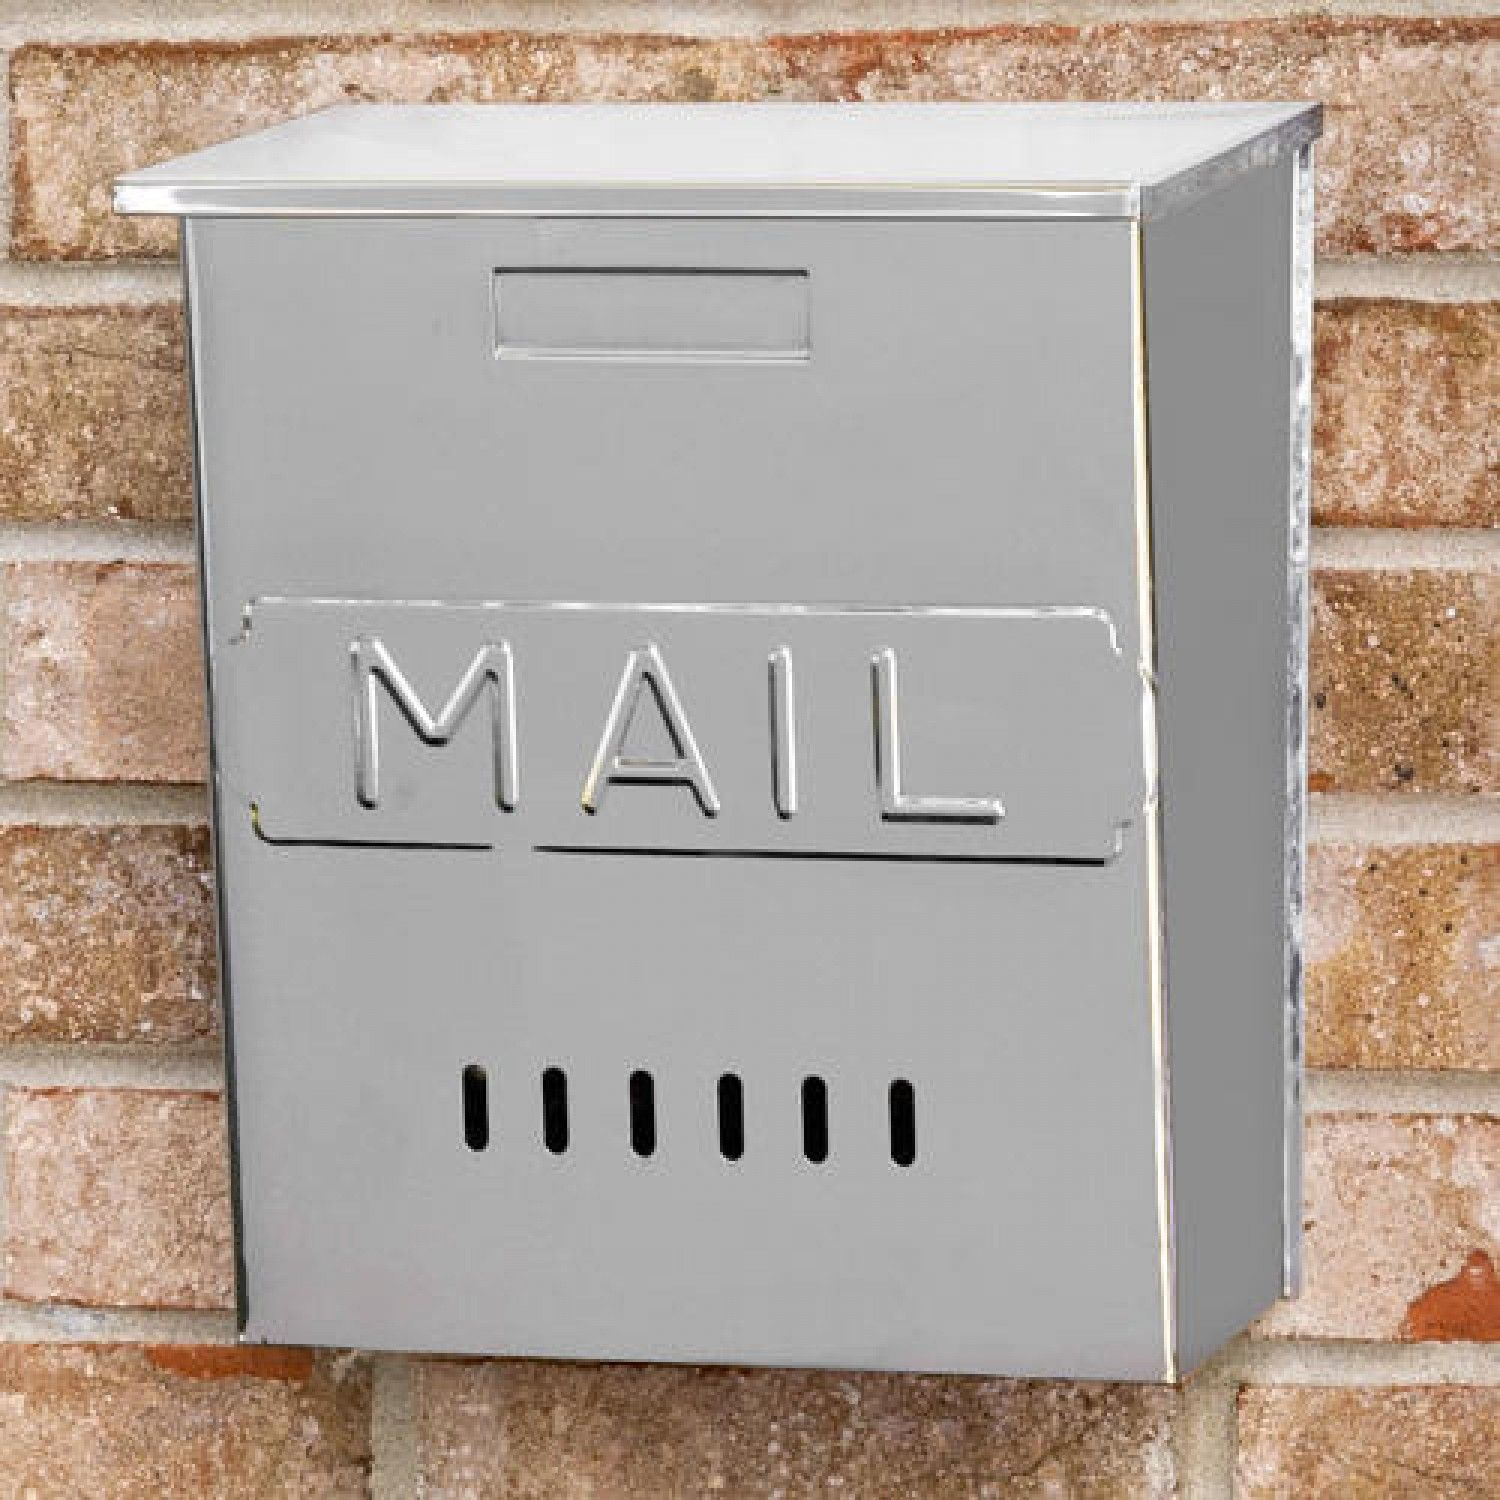 Vertical Mail Wall Mount Stainless Steel Mailbox Mailboxes And Slots Outdoor Stainless Steel Mailbox Wall Mount Mailbox Outdoor Shower Kits